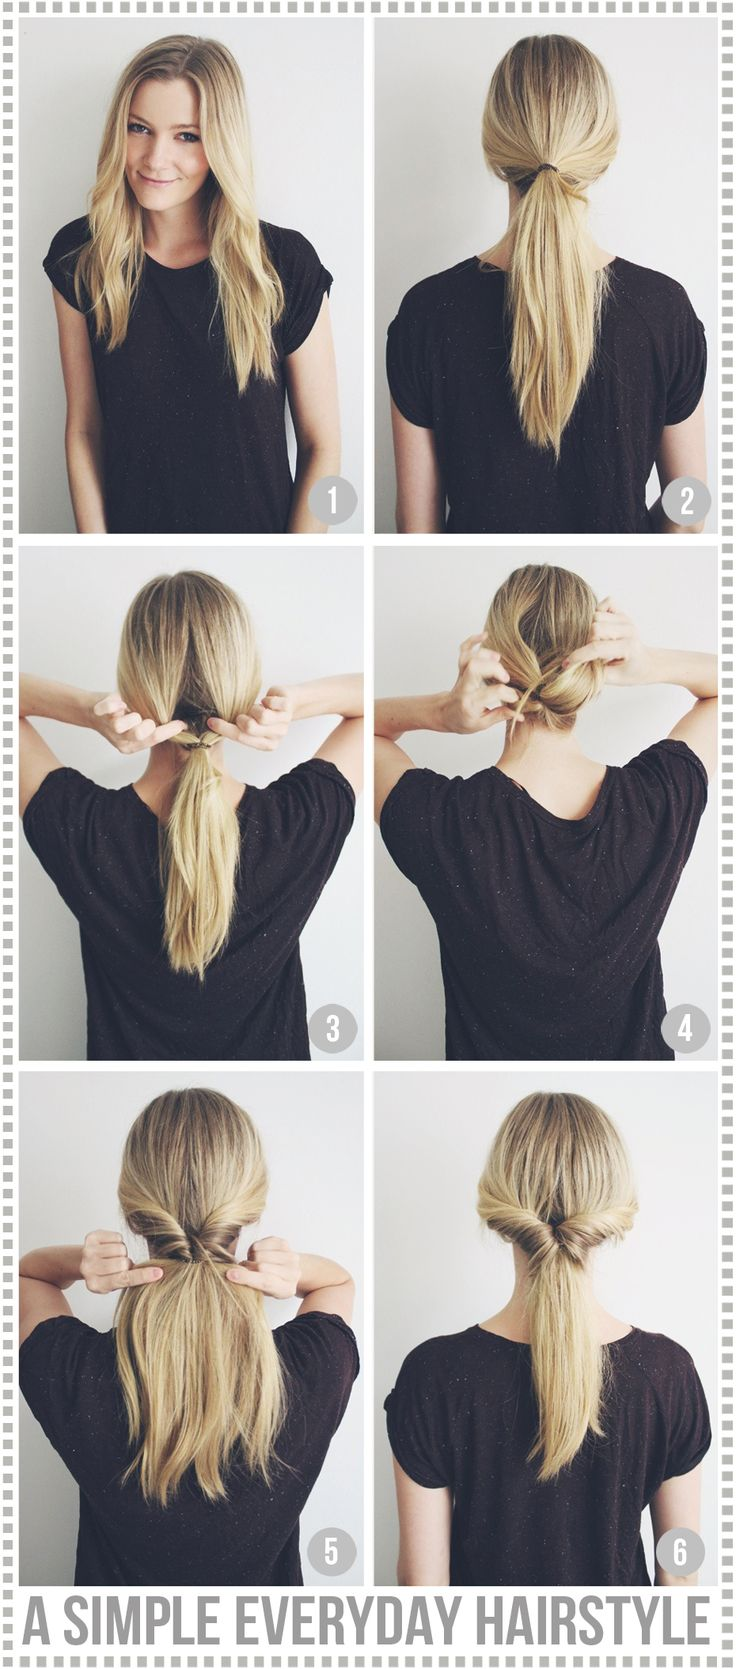 A Simple Everyday Hairstyle - Passions For Fashion